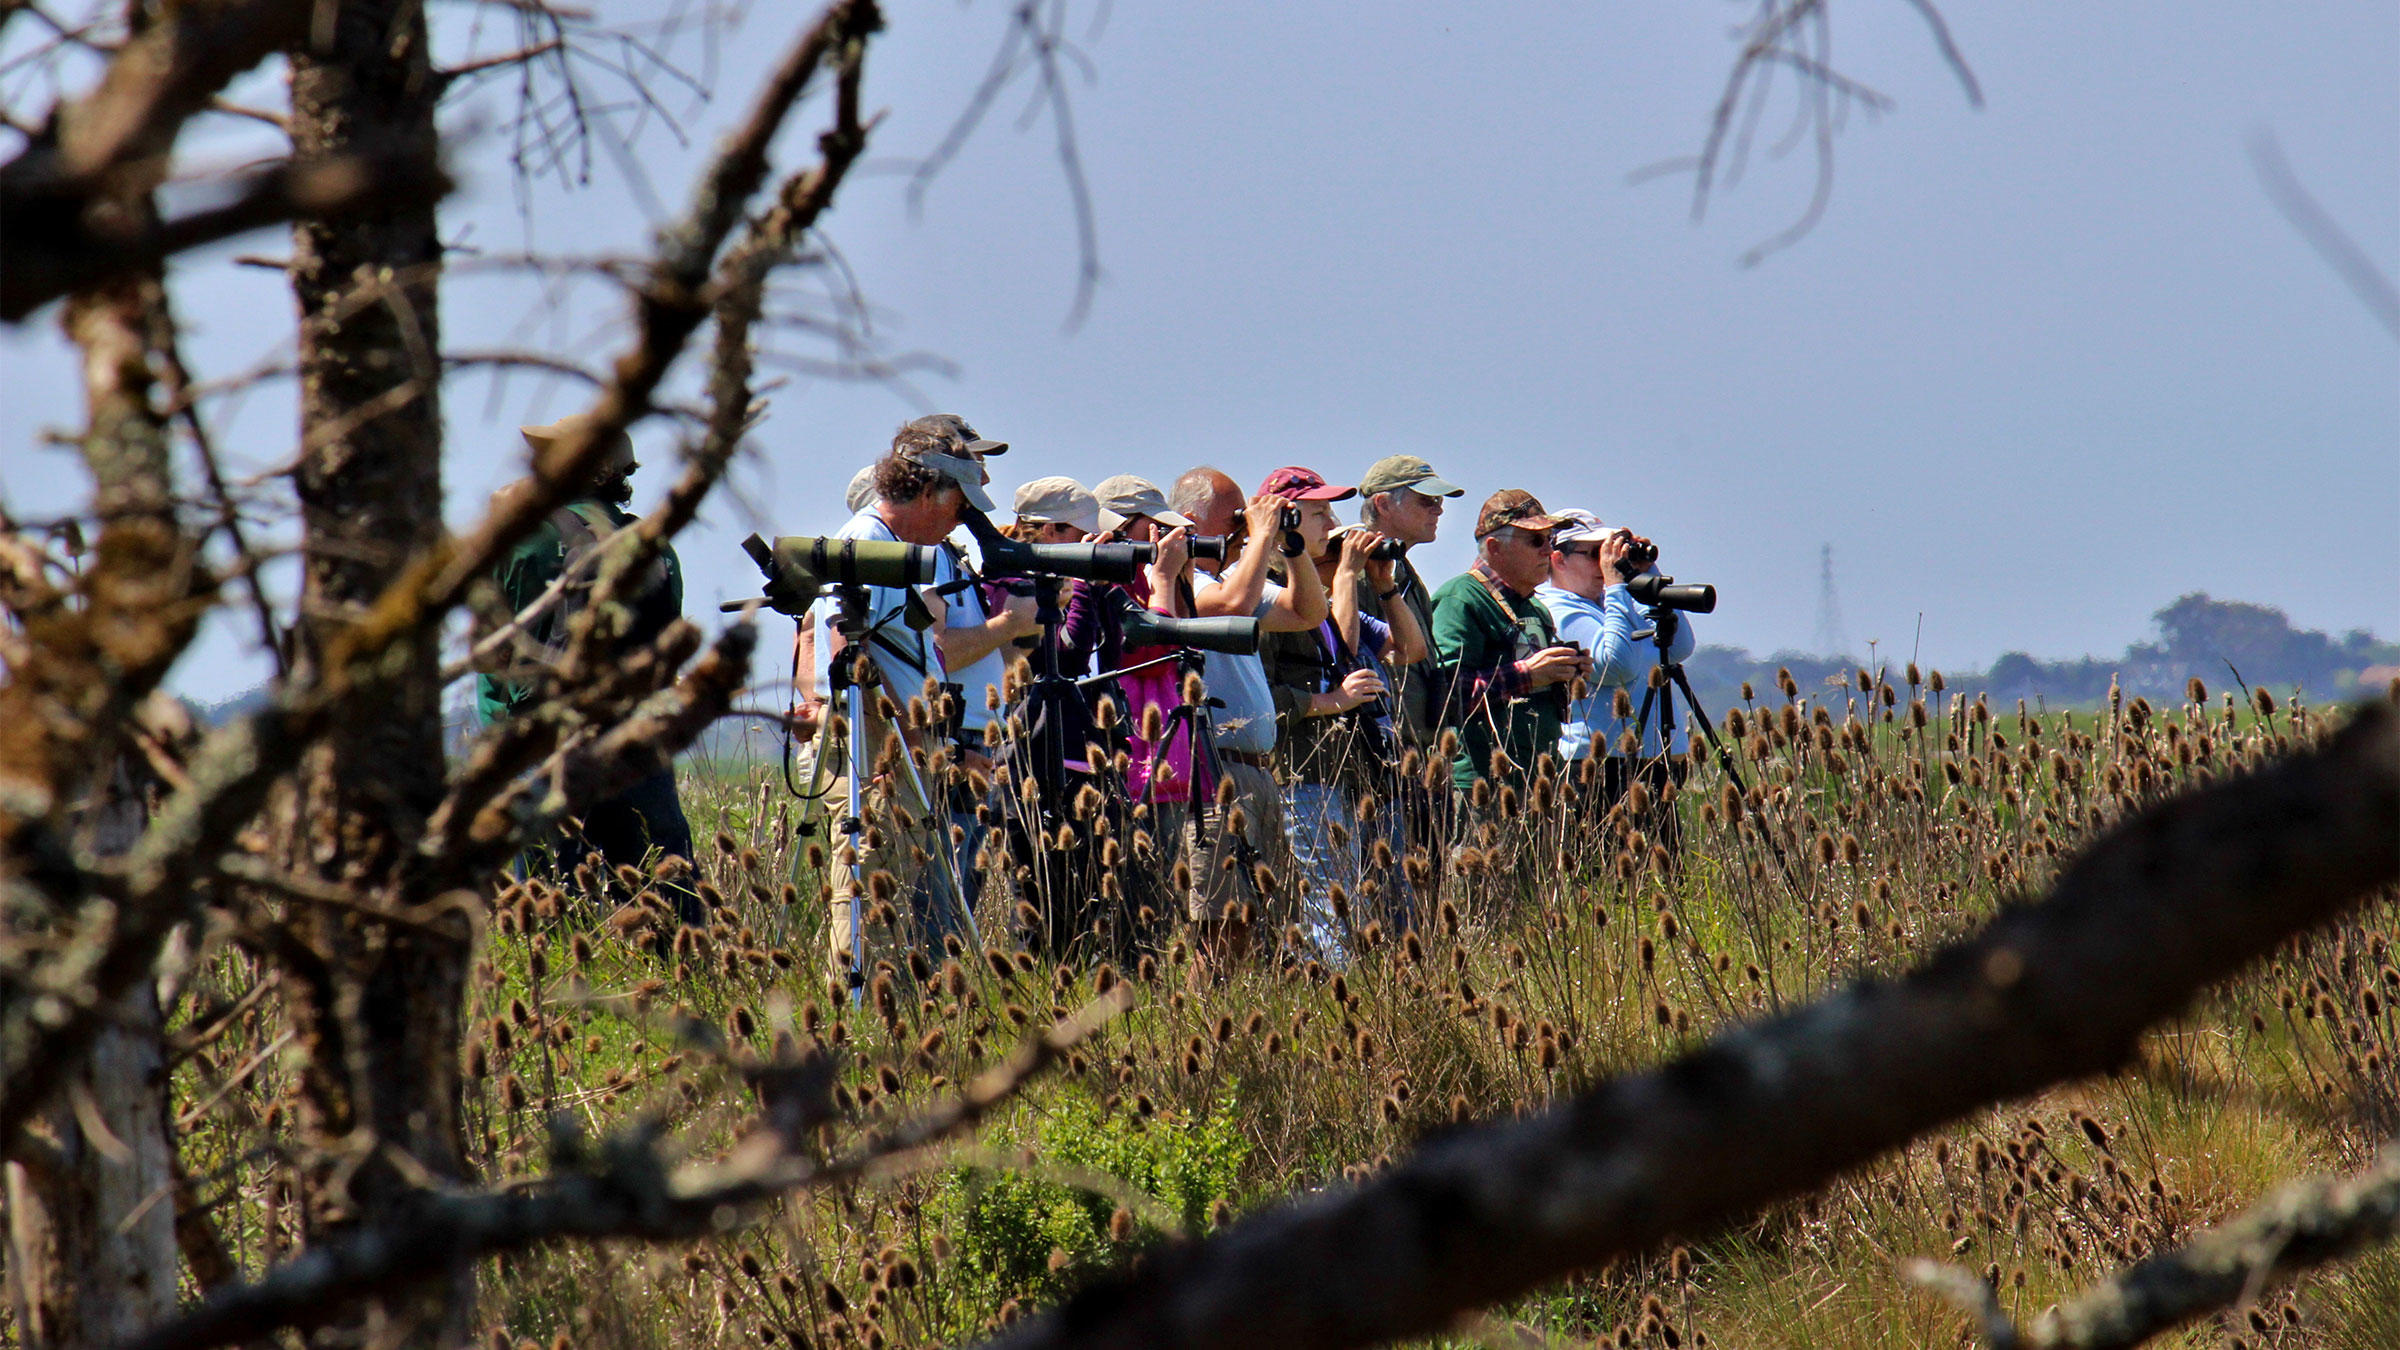 Thousands of Marbled Godwits flock to Northern California's Humboldt Bay during Godwit Days, a festival held in Arcata, California at the end of April. Birders with scopes flock there, too. Neva Swensen